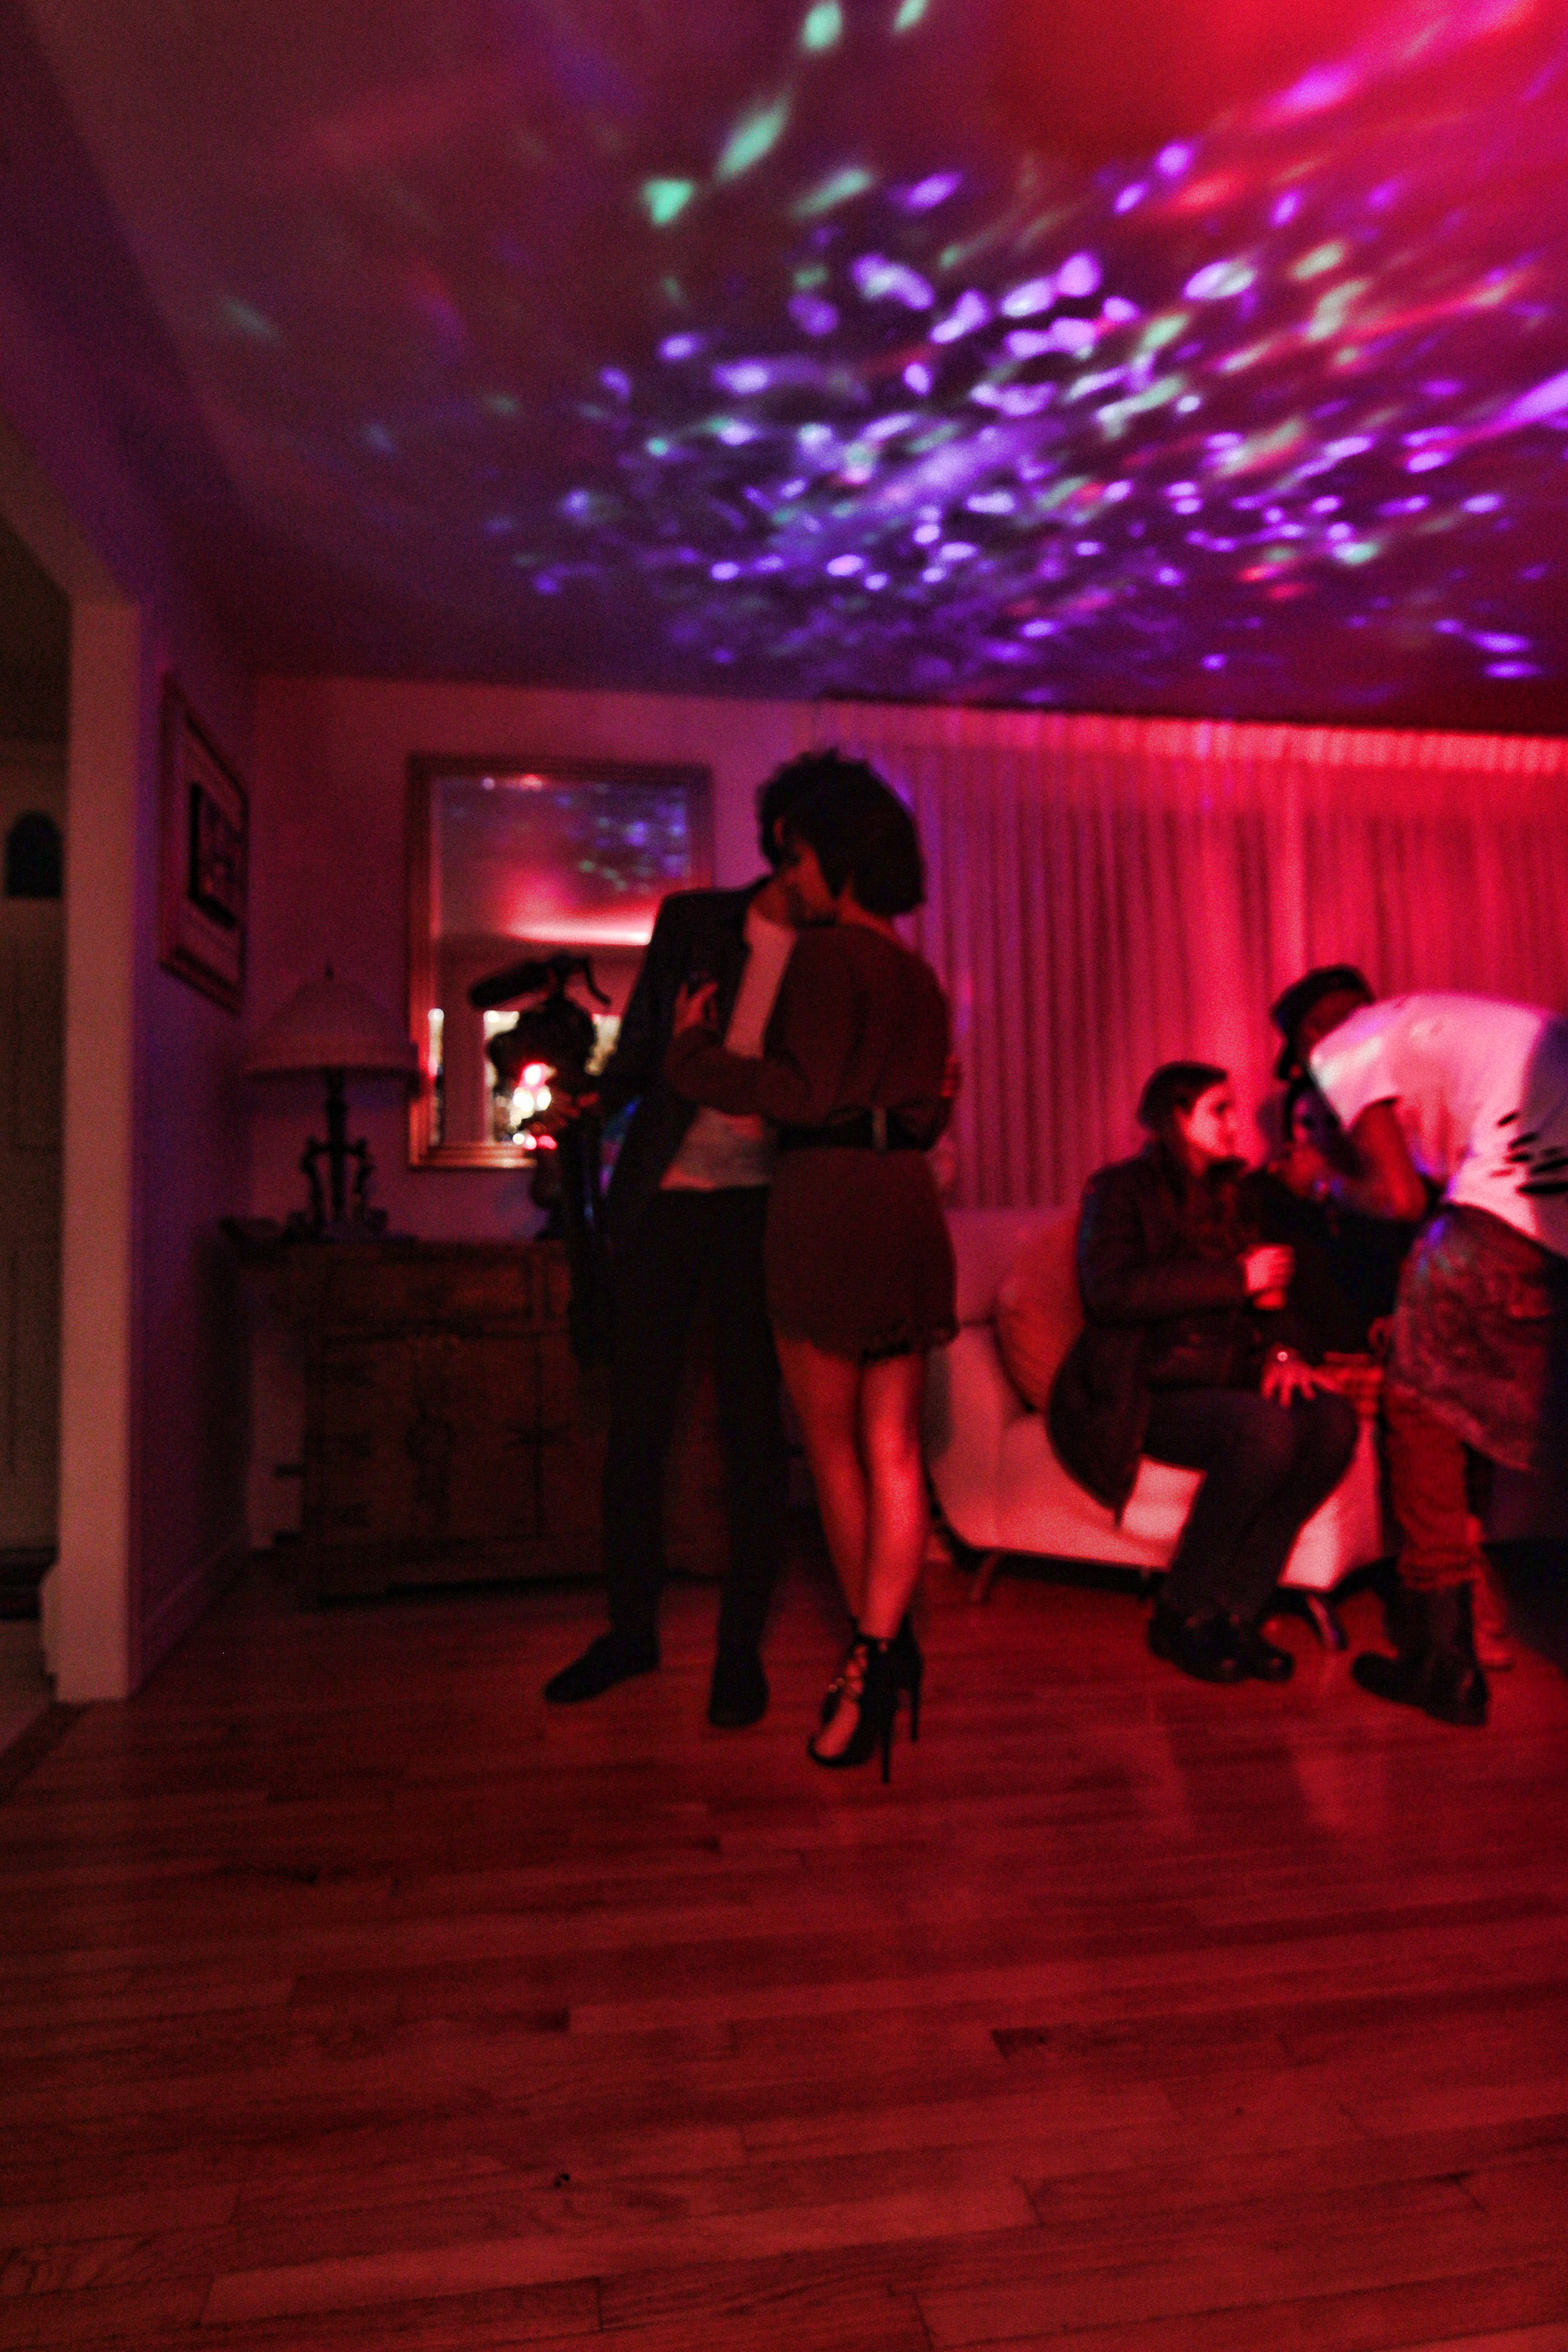 here dance short film house party scene bts pic 7